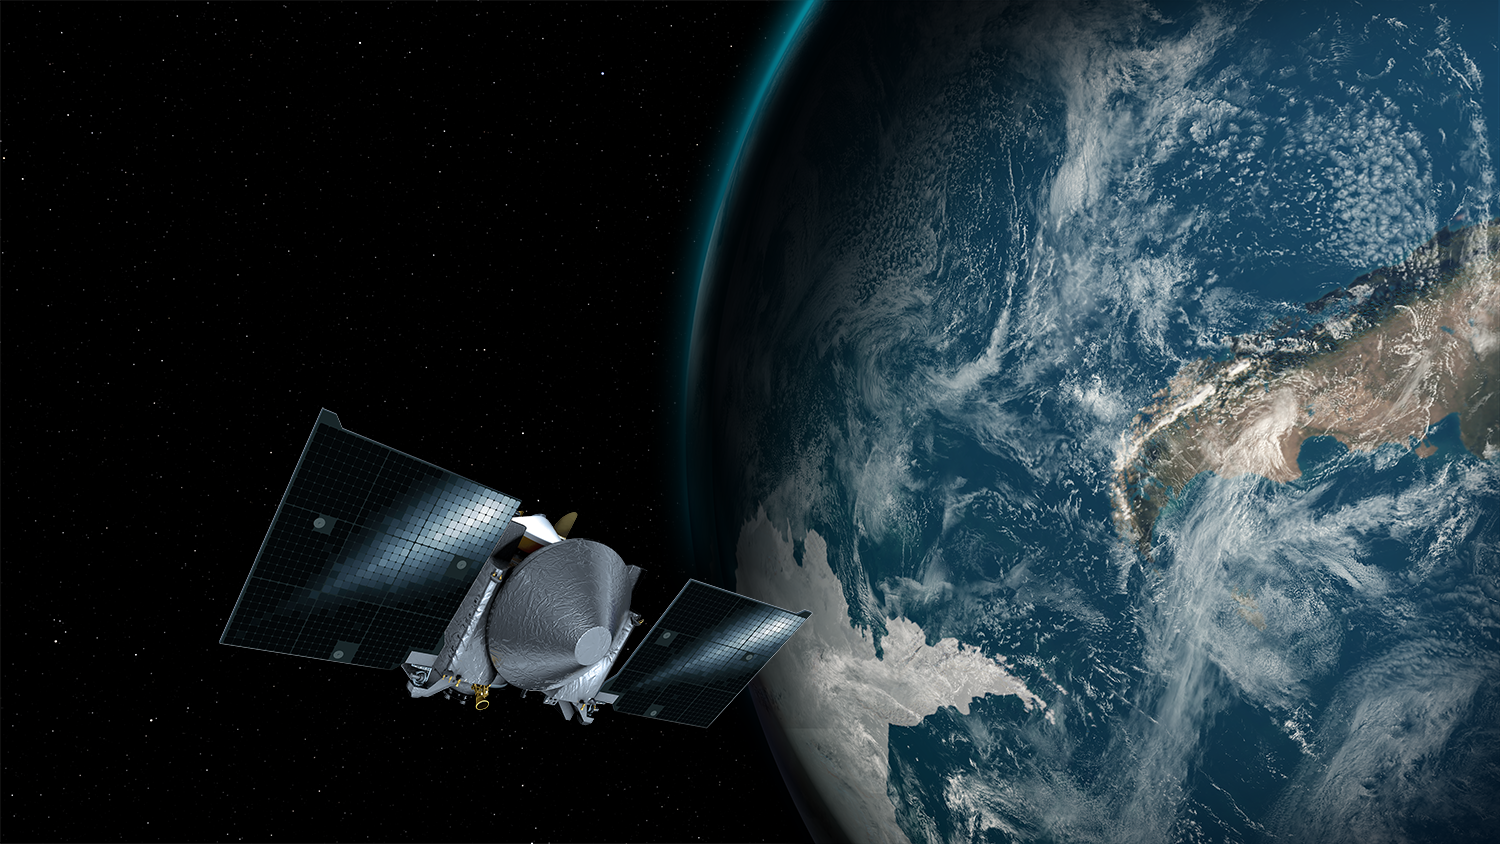 NASA's Asteroid-Bound Spacecraft to Slingshot Past Earth